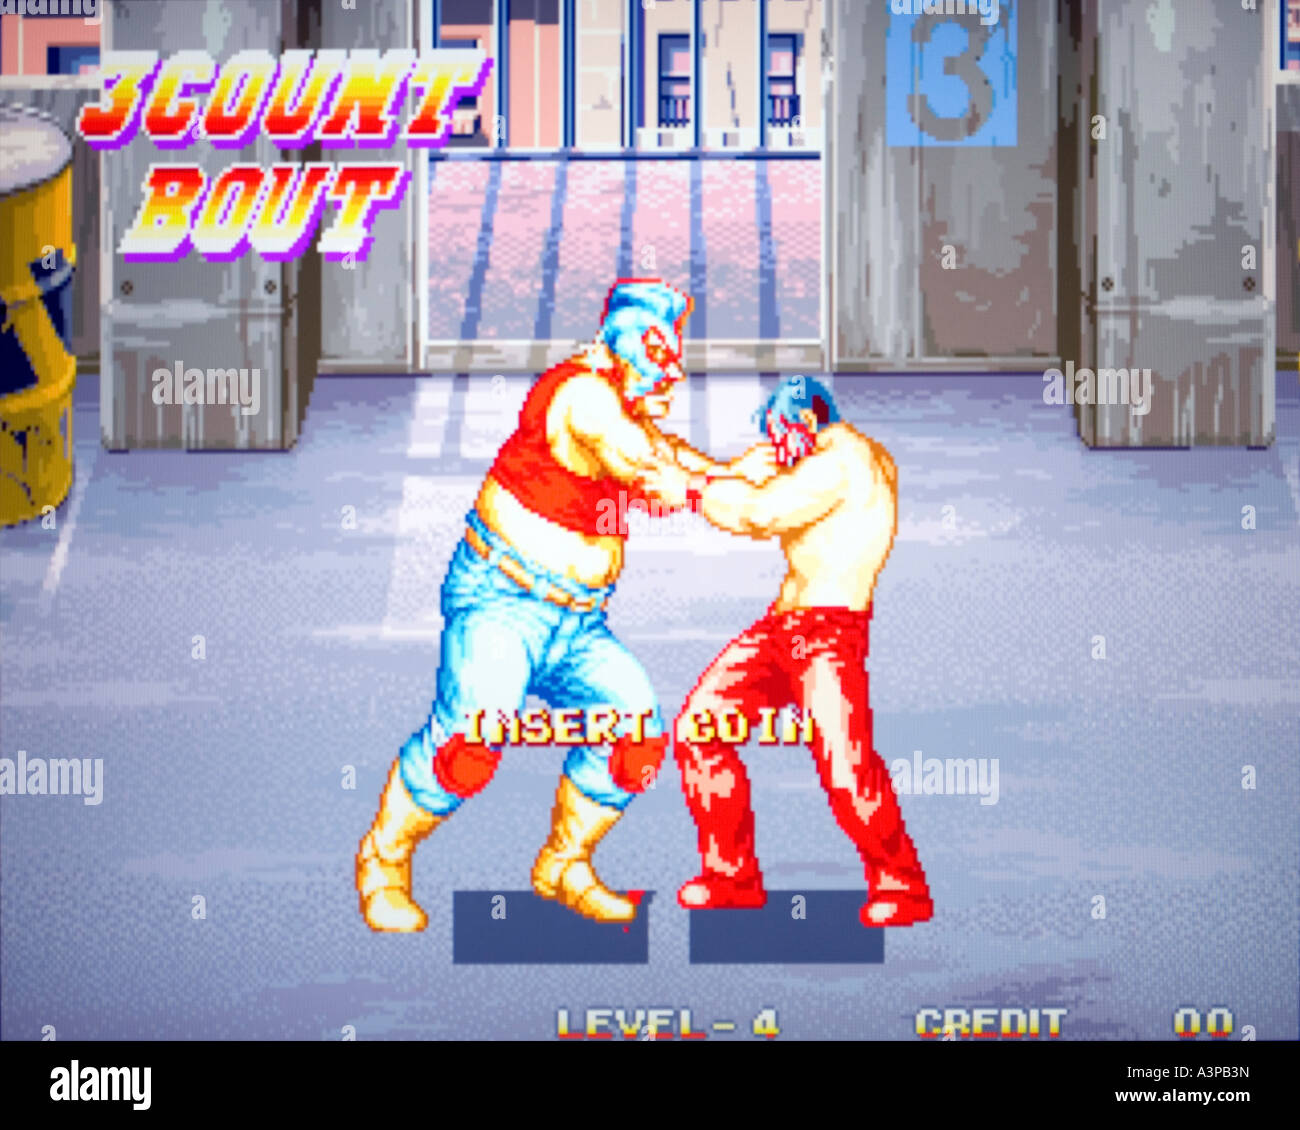 3 Count Bout SNK Corp 1993 vintage arcade videogame screenshot EDITORIAL USE ONLY - Stock Image